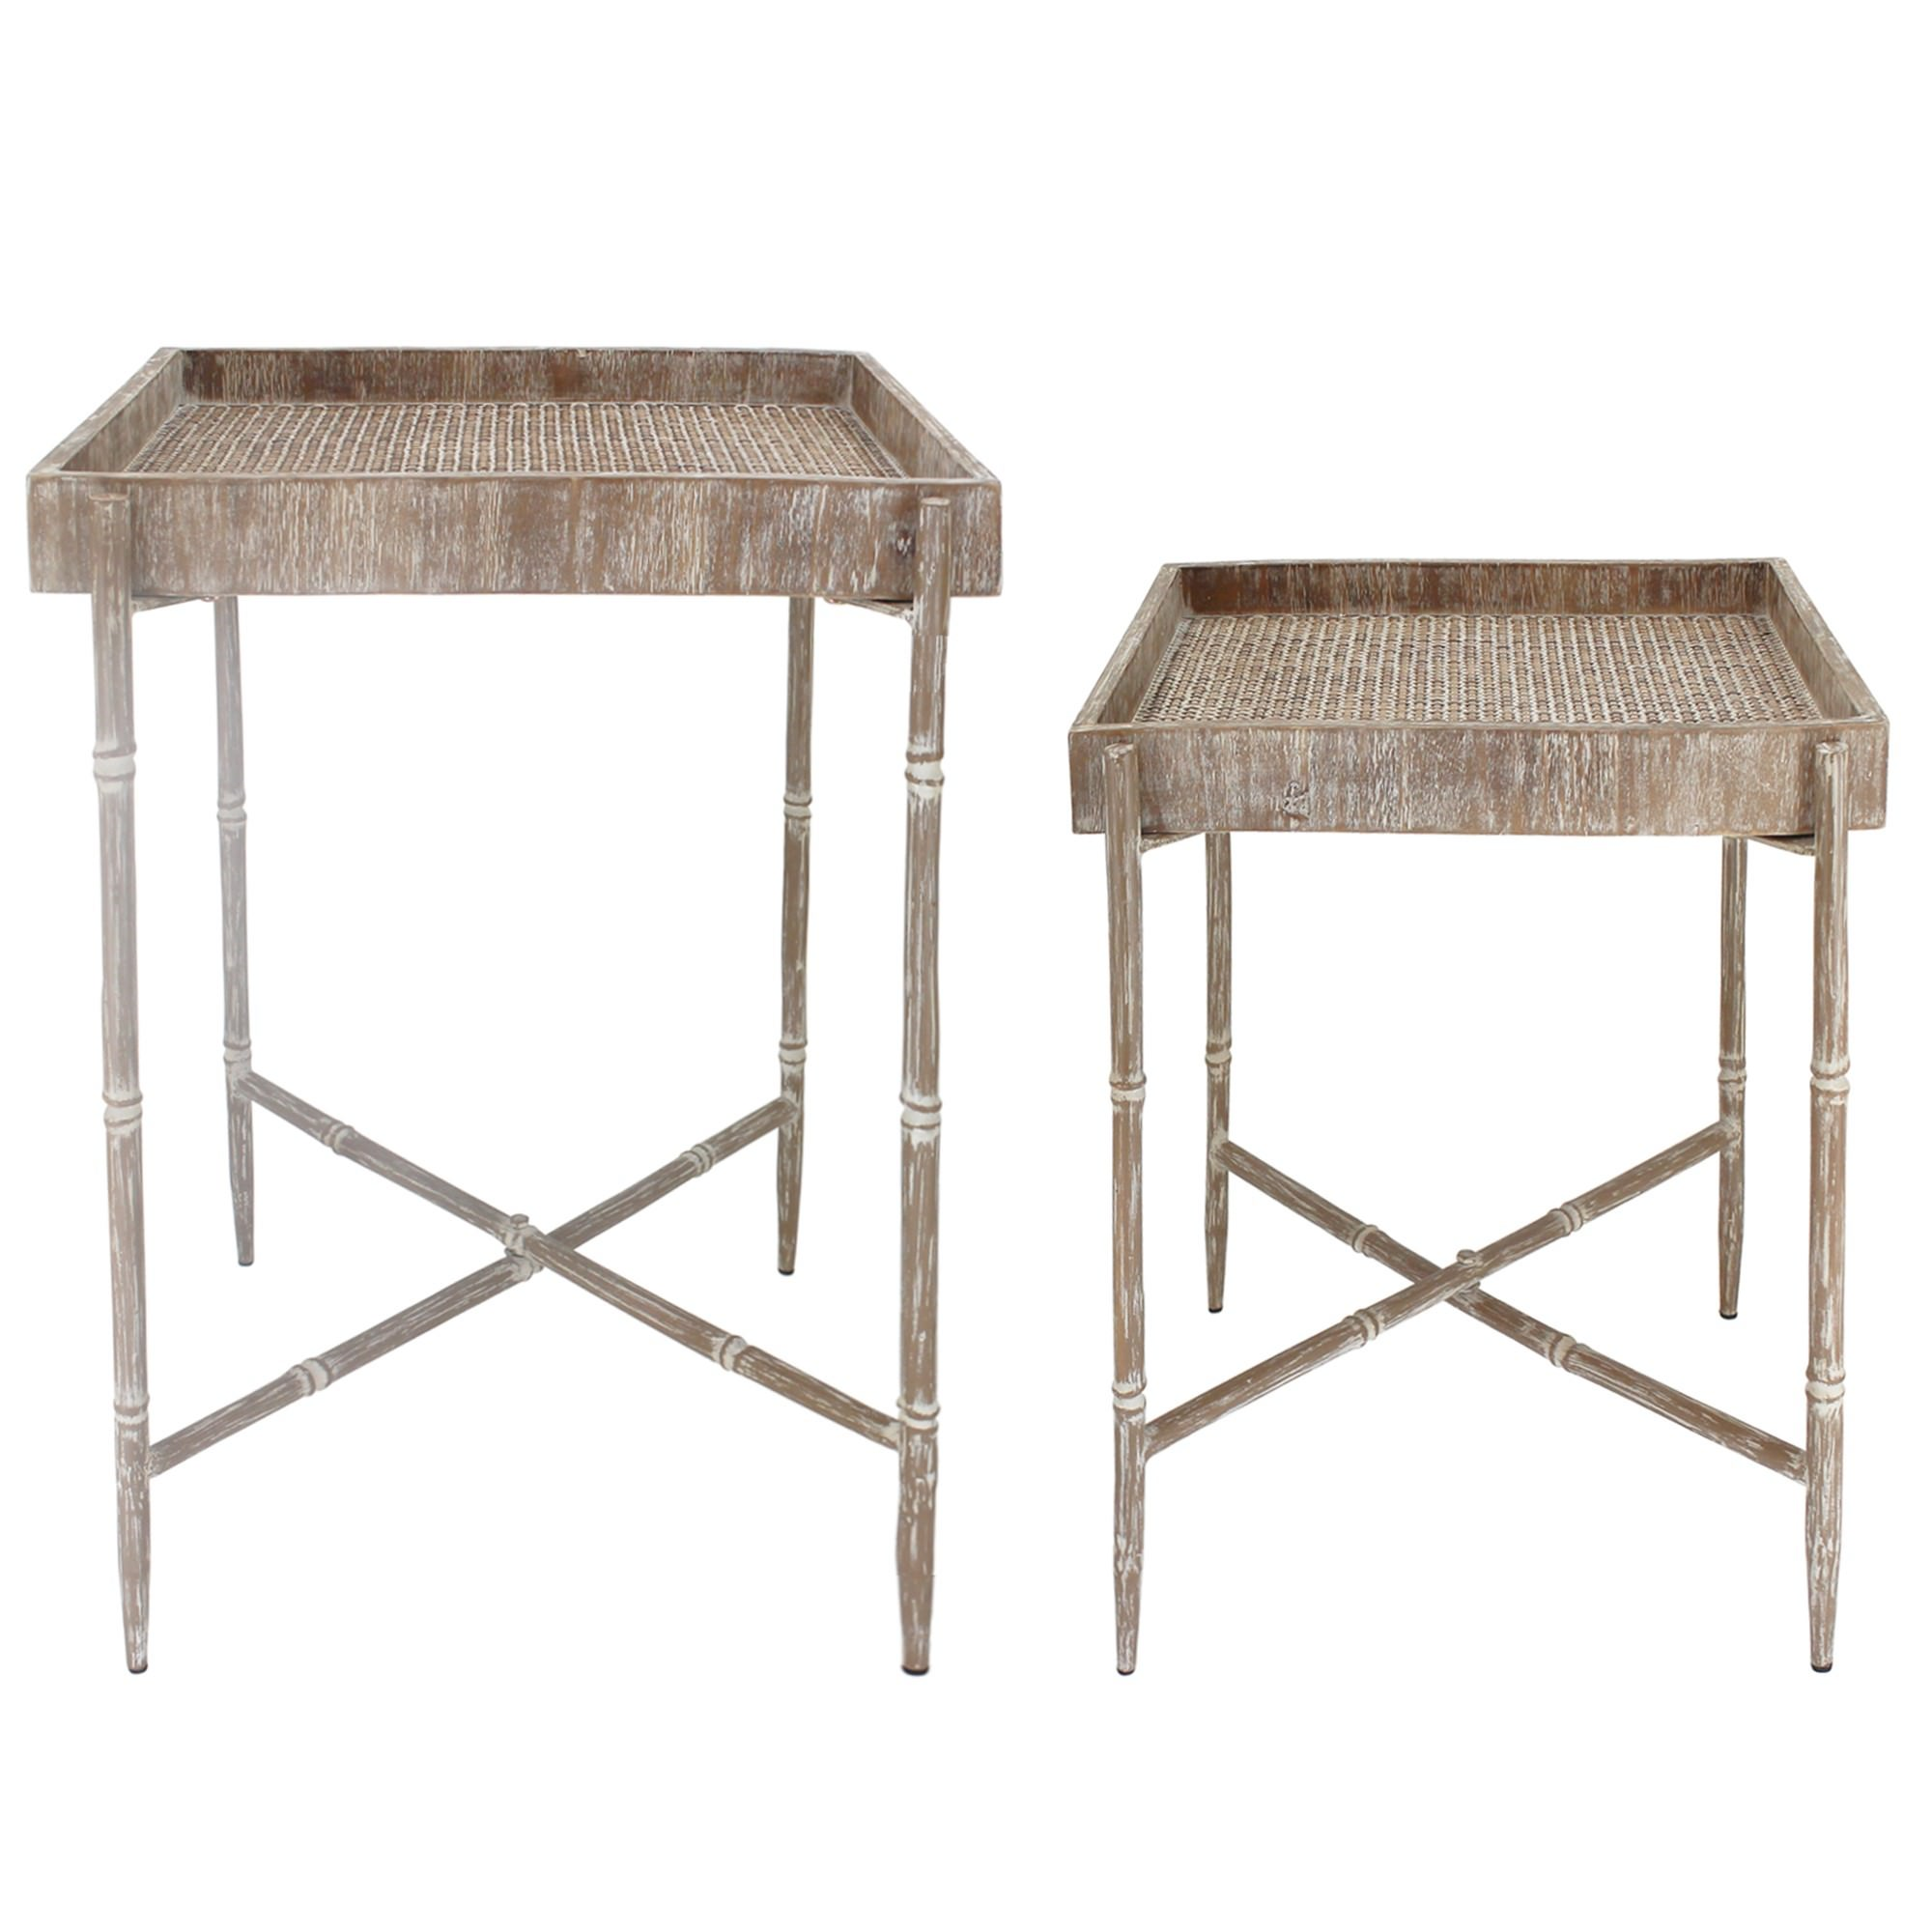 Leanna 2 Piece Wooden Tray Top Side Table Set